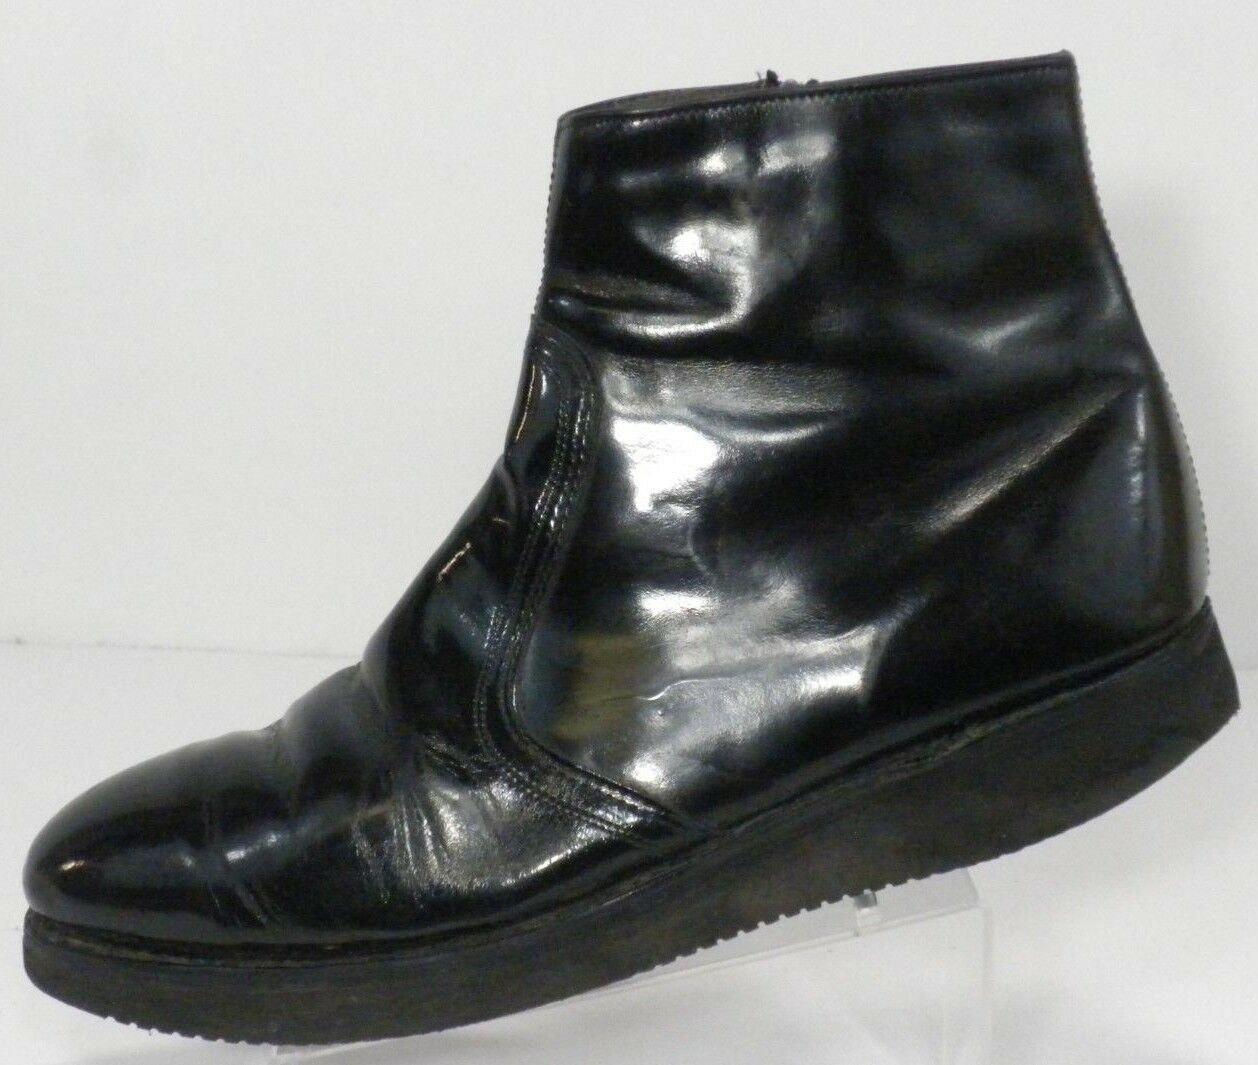 Lehigh Mens Ankle Boots U.S. 11 D Black Leather Side Zip Vibram Sole